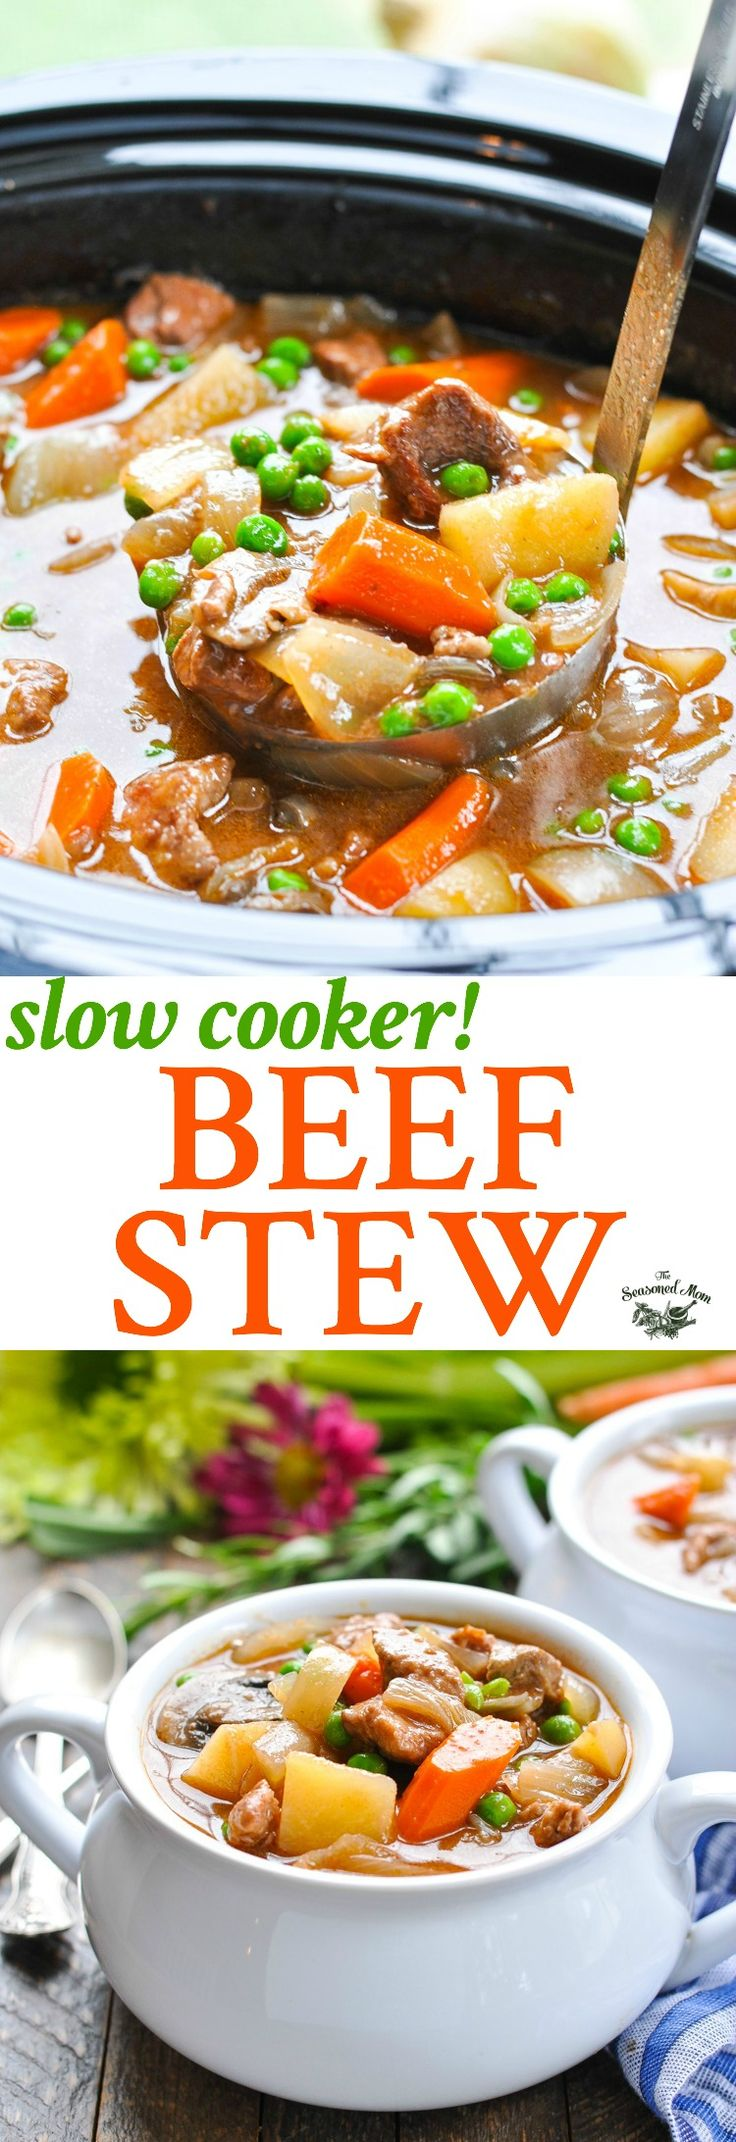 This classic FarmhouseSlow Cooker Beef Stew is an easy one pot meal that simmers on the counter all day while you go about your busy schedule! Slow Cooker Recipes Healthy | Beef Recipes | Easy Dinner Recipes | Healthy Dinner Ideas #beef #slowcooker #dinner